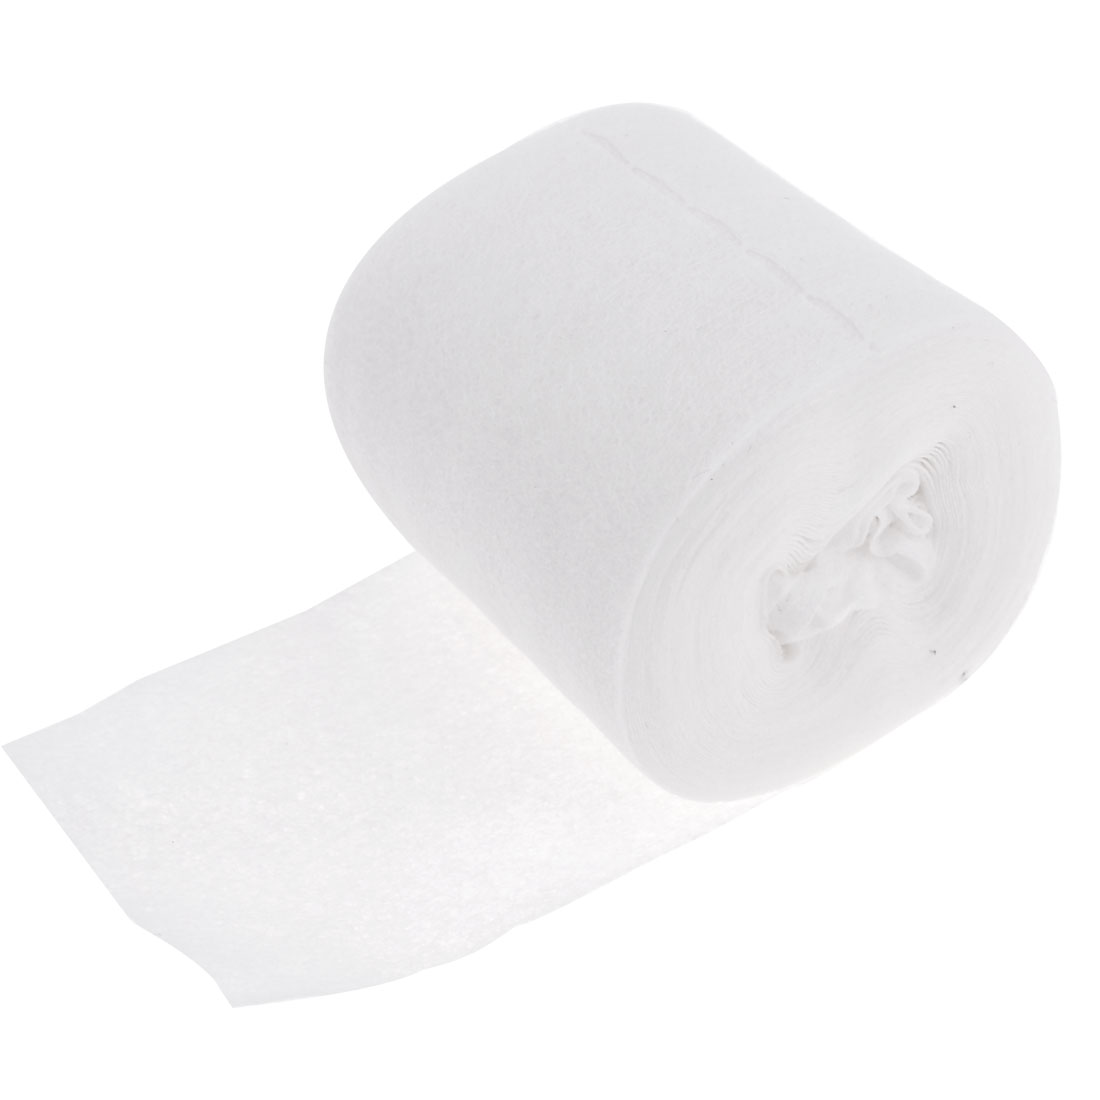 White Non Woven Facial Skin Care Cosmetic Makeup Cotton Roll for Women